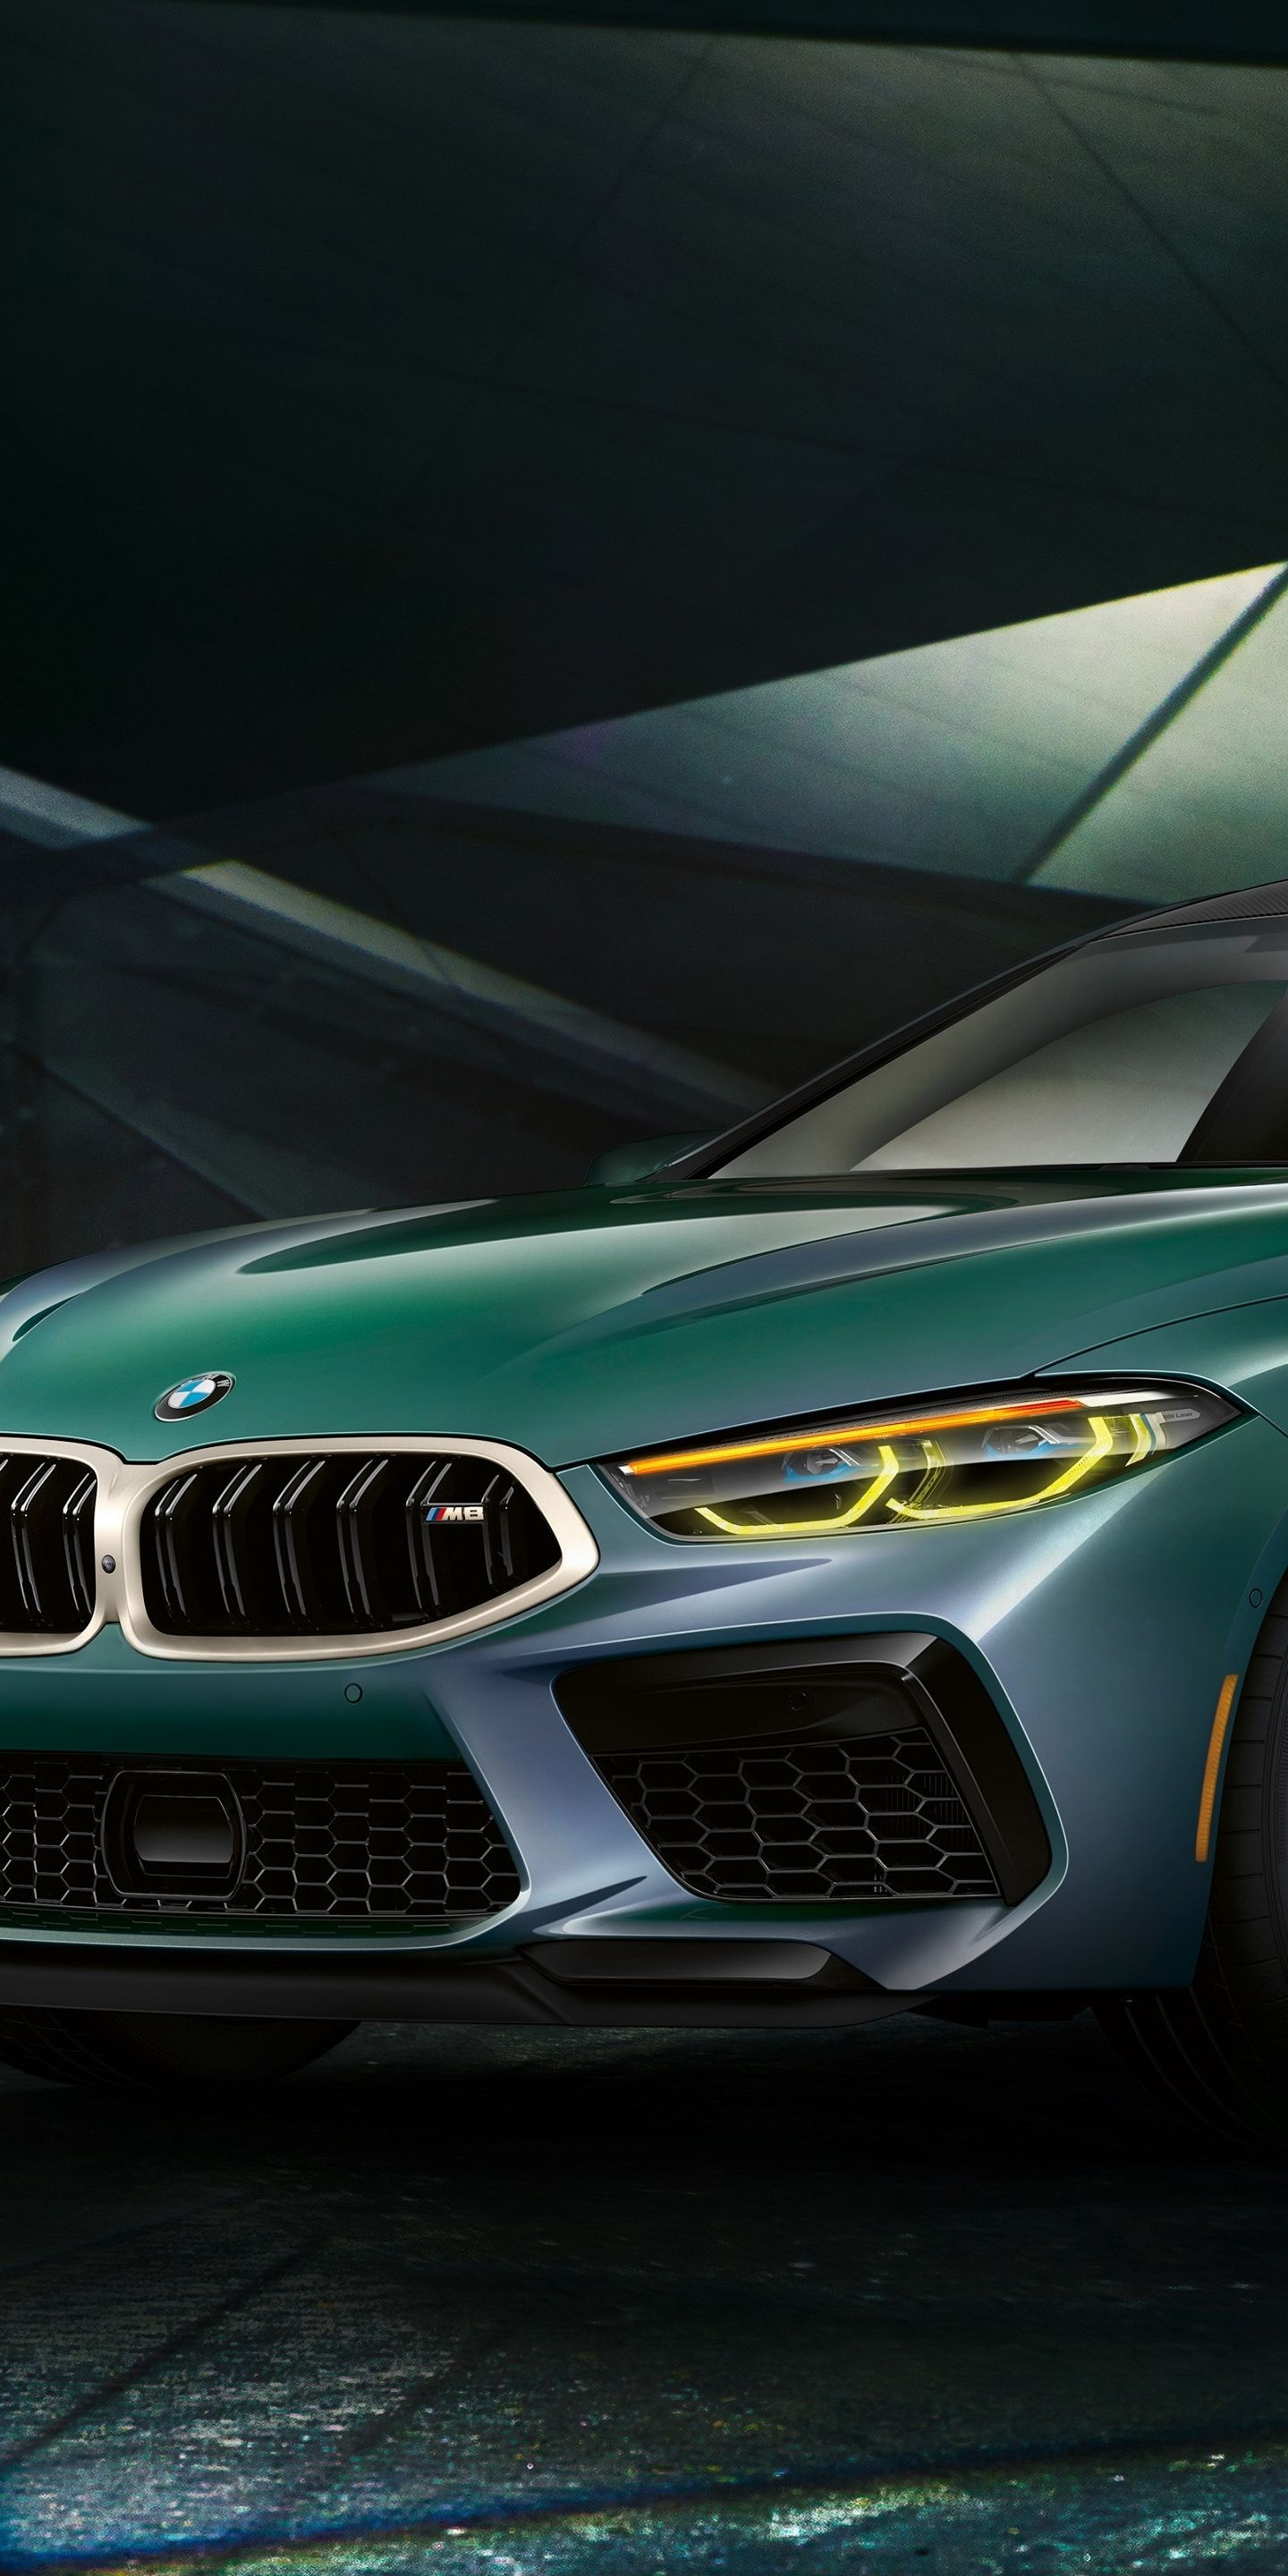 1440x2880 2020 car BMW M8 Gran Coupe First Edition green car 1440x2880